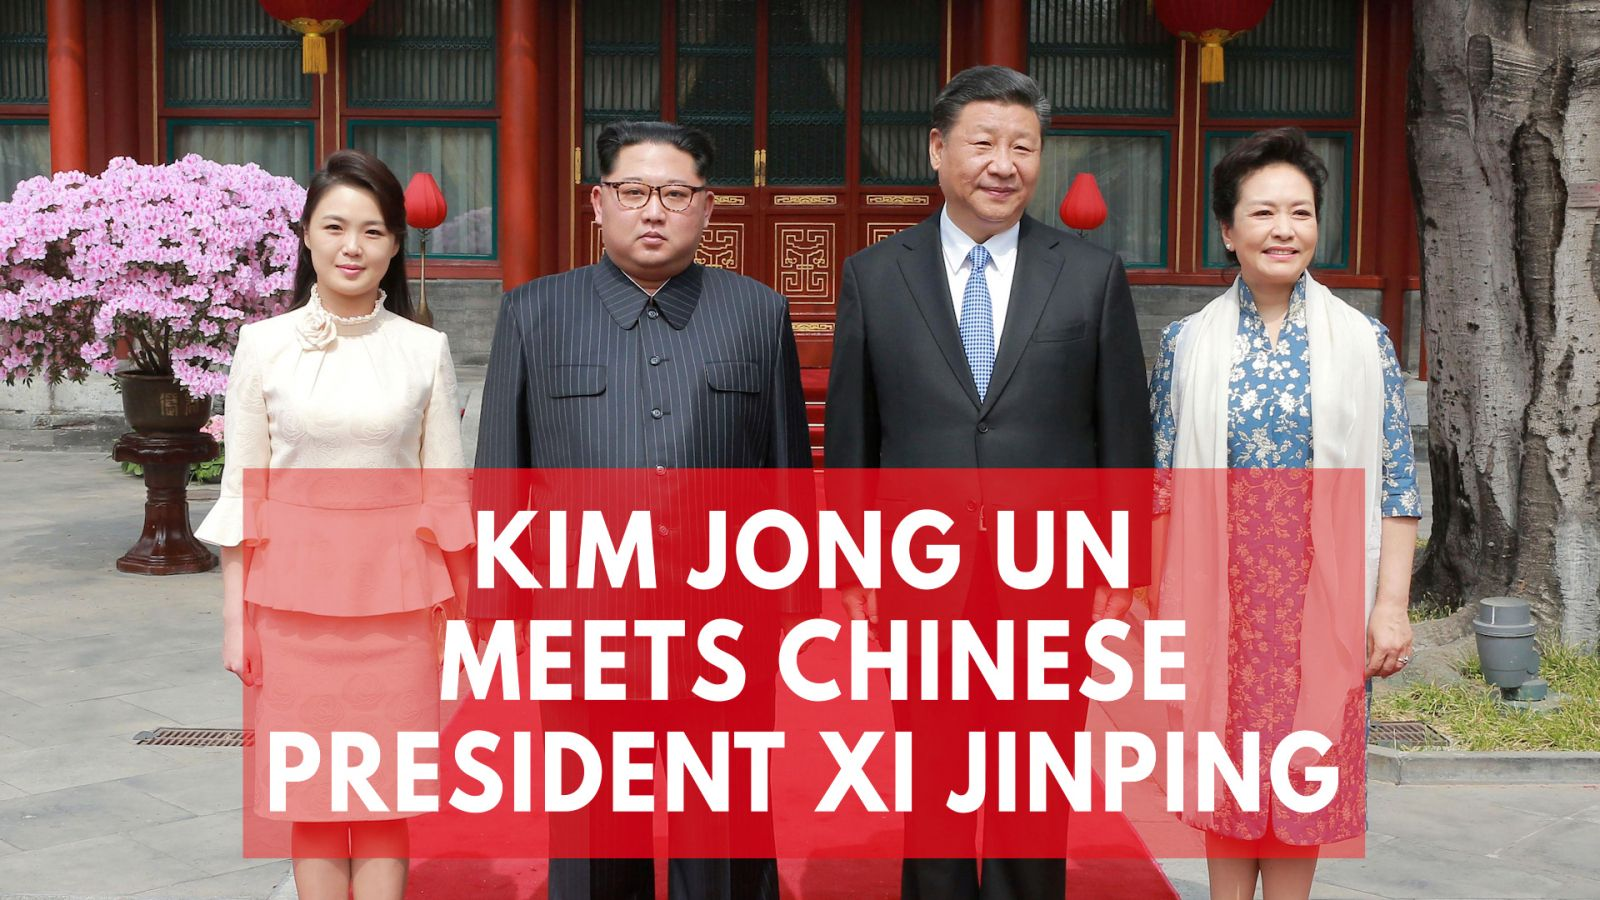 north-koreas-kim-jong-un-met-xi-jinping-on-surprise-visit-to-china